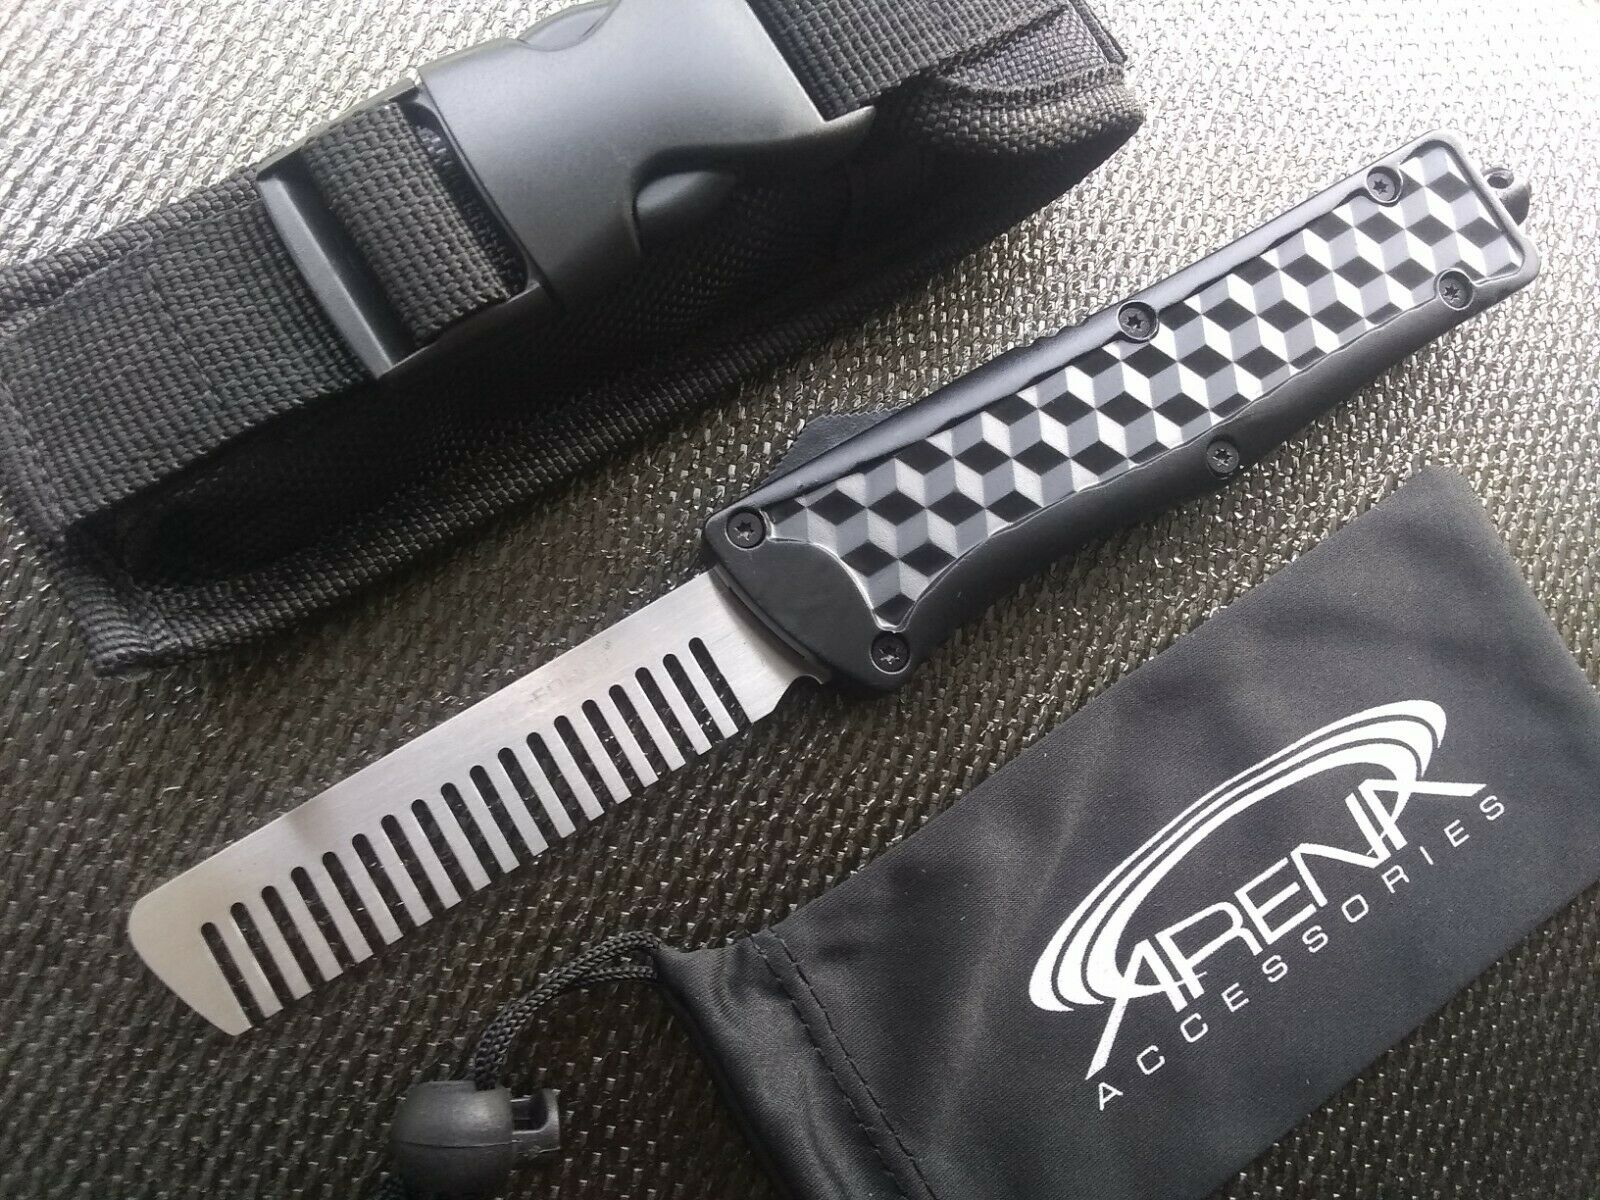 TacForce Tactical OTF Automatic Retractable Switchblade Hair Comb EDC Hairdresser Barber Tool Novelty Item